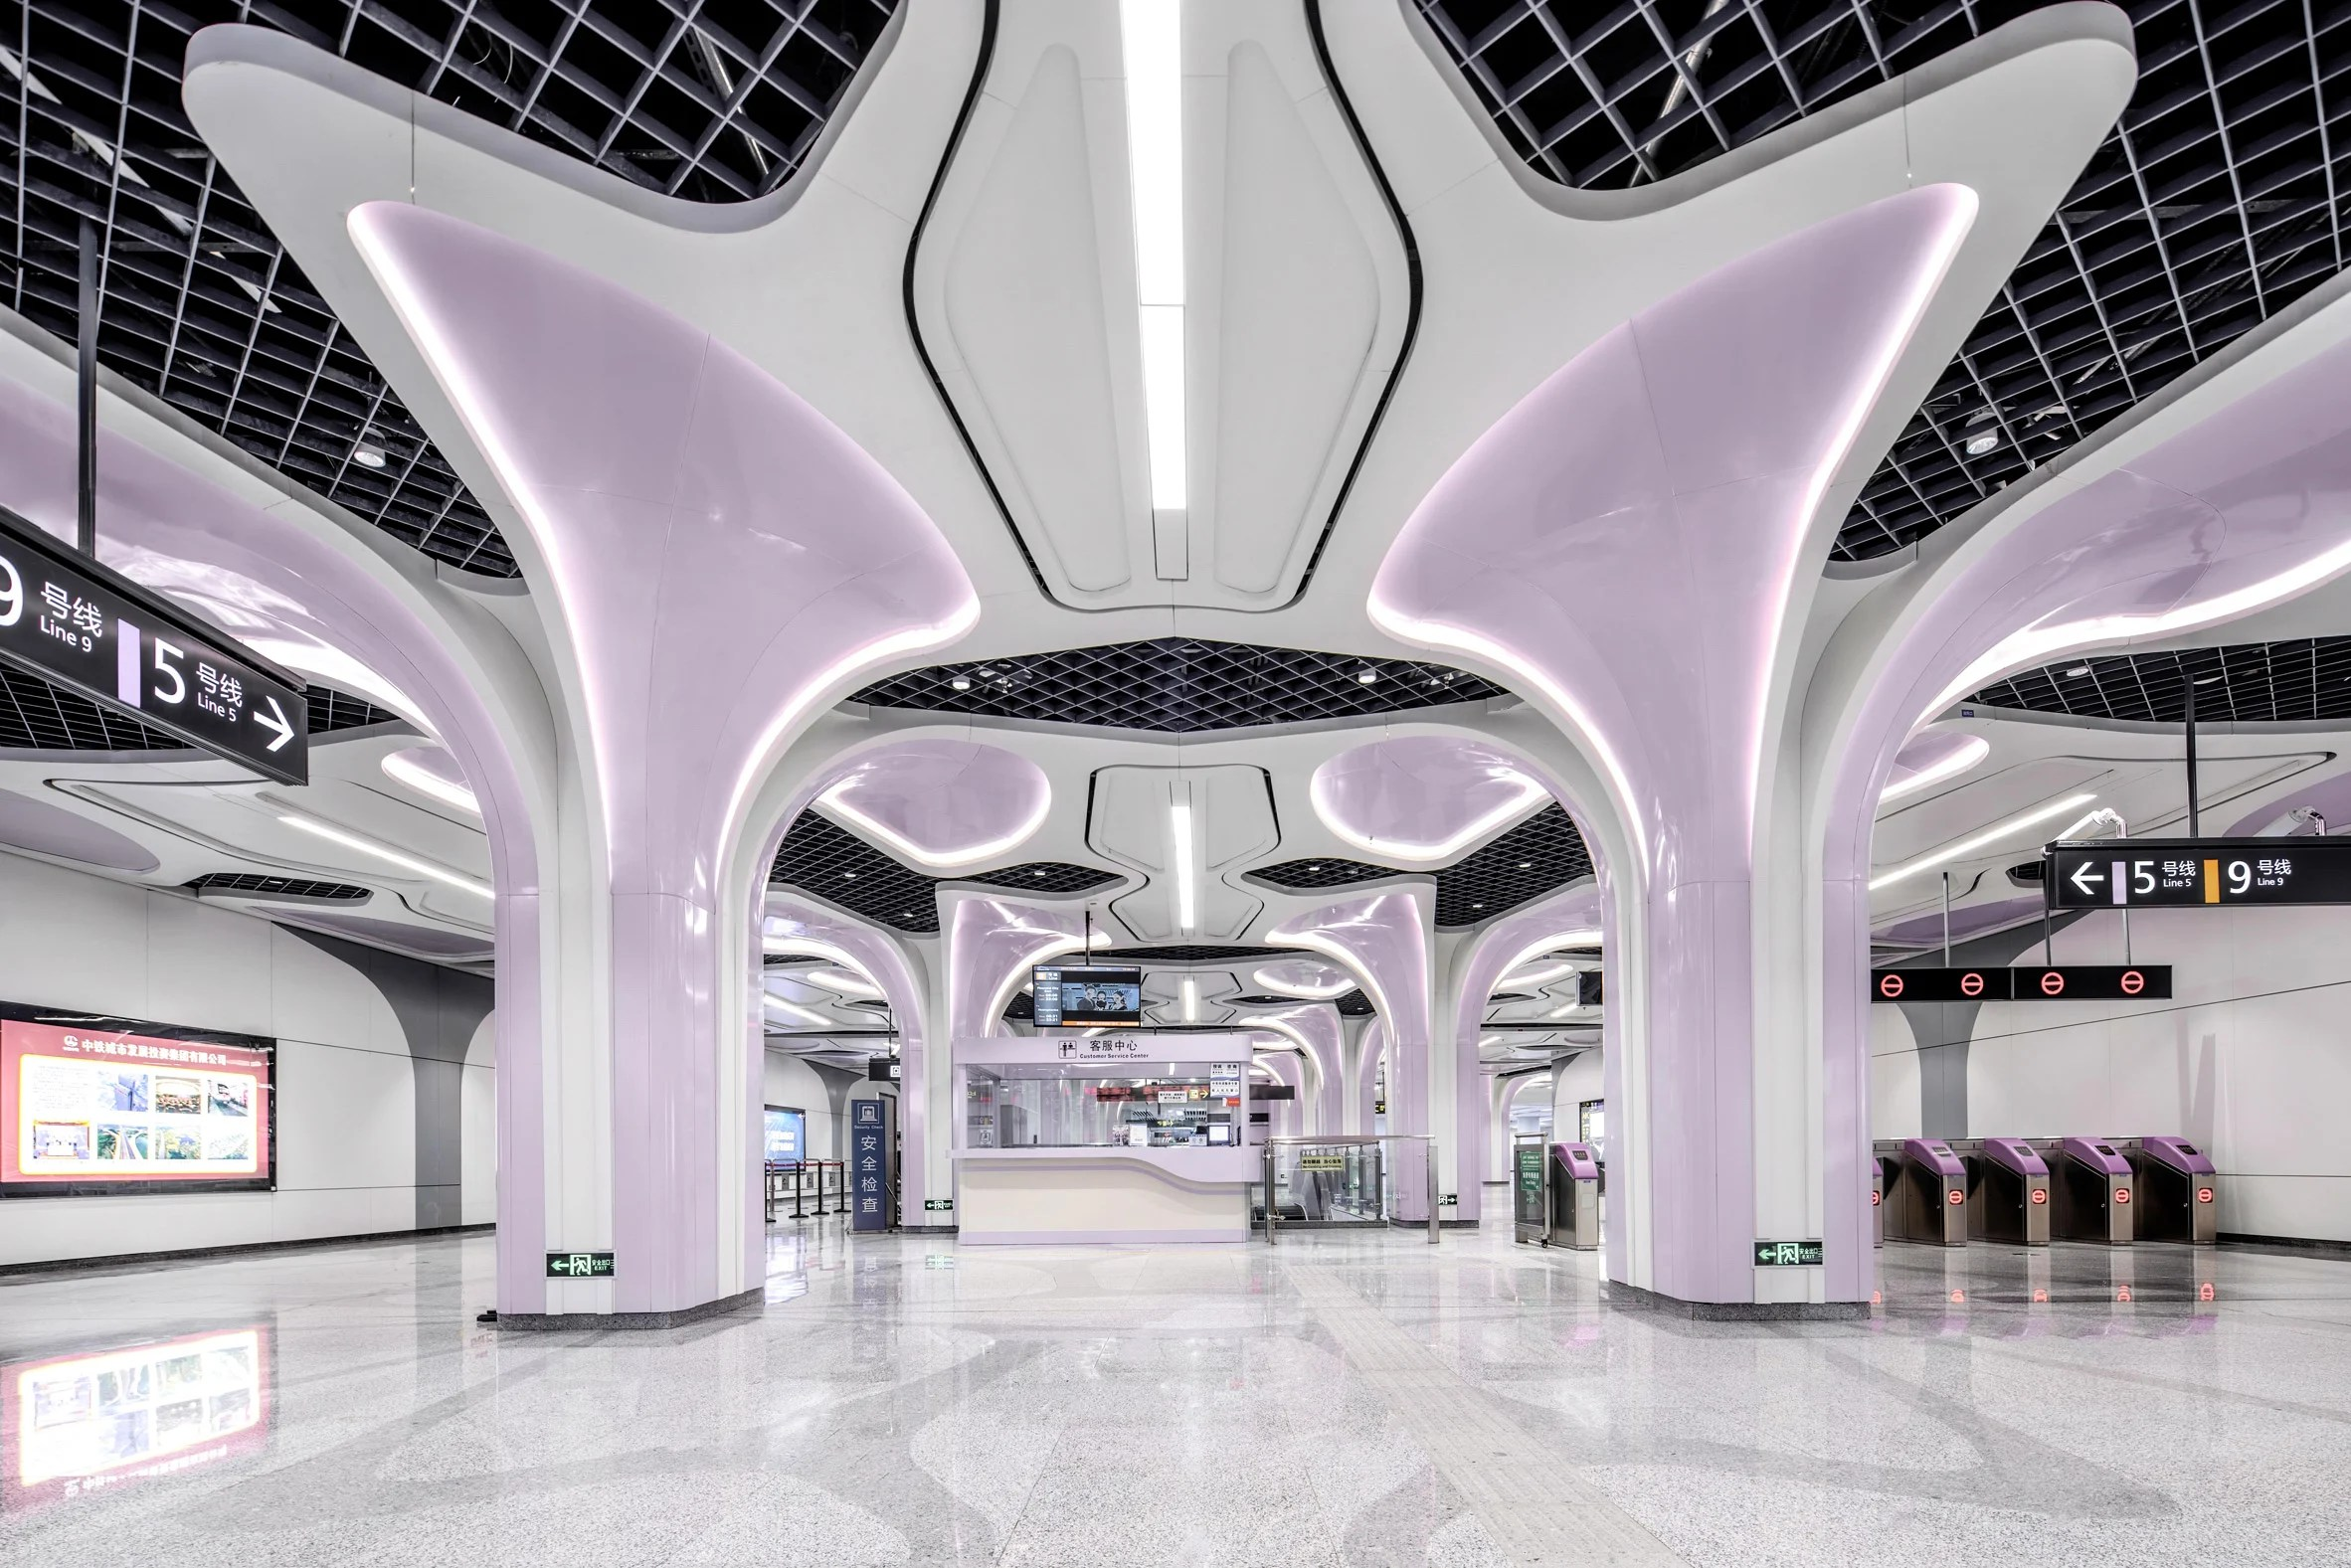 Jincheng Avenue Station designed by J&A and Sepanta Design for Chengdu's metro Line 9